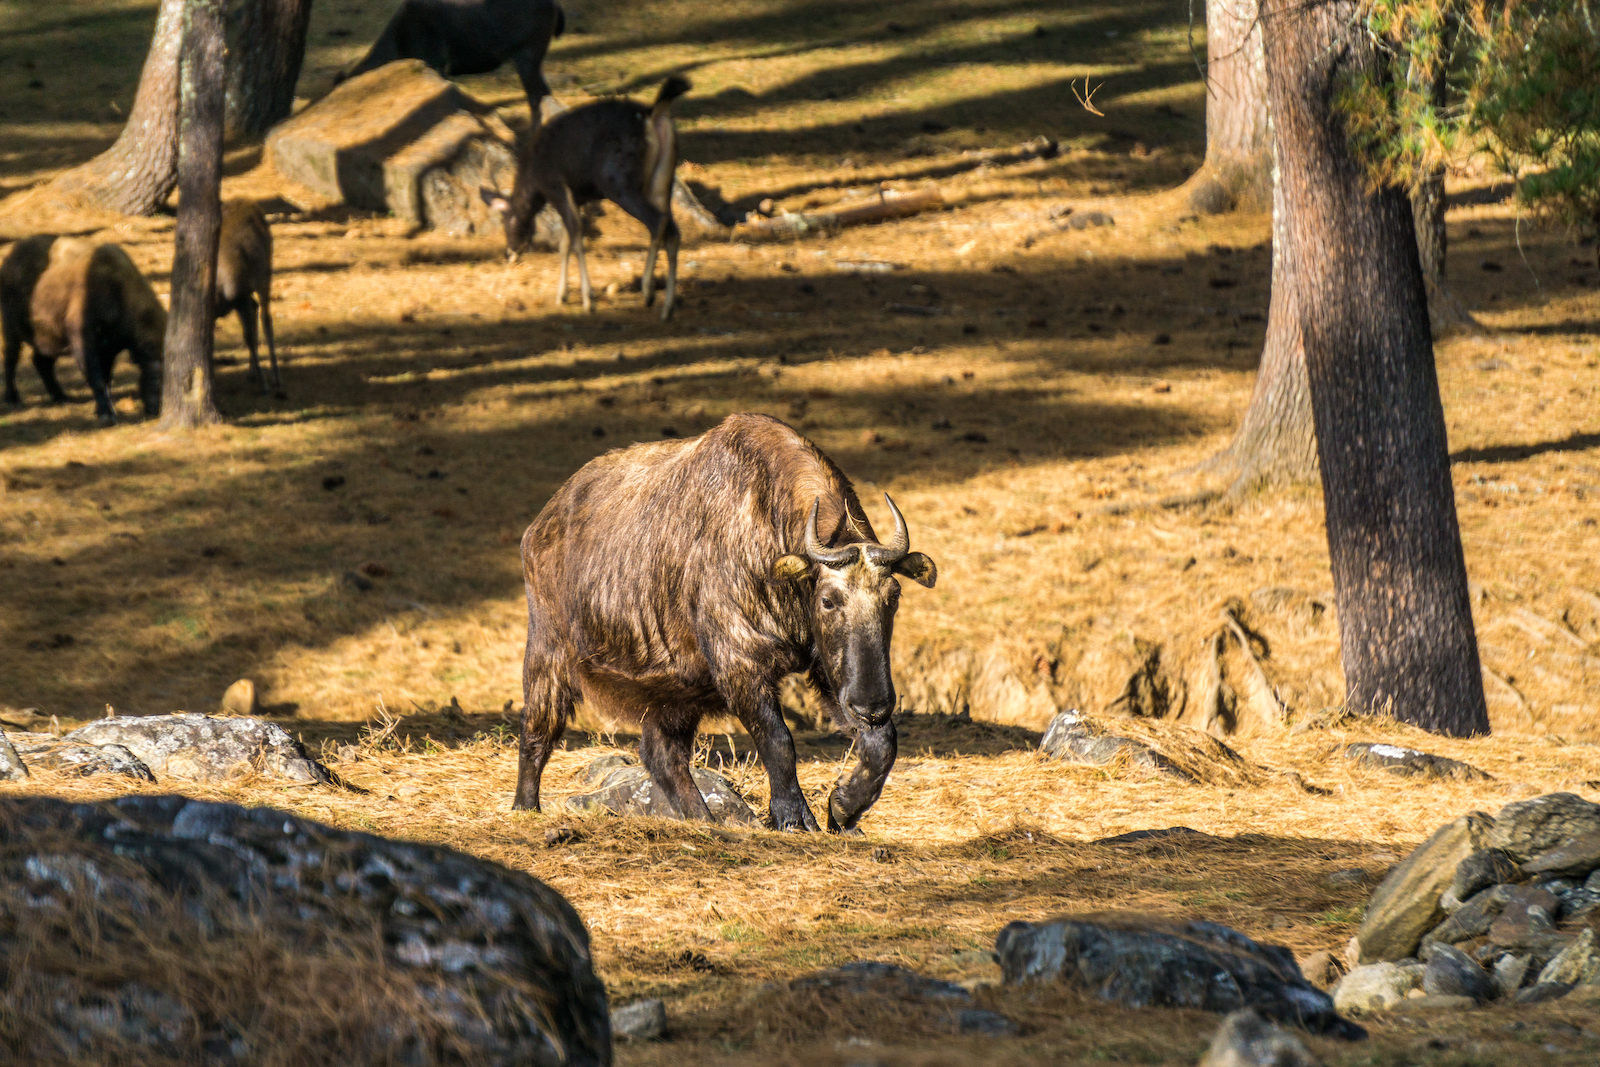 The Takin at Motithang Takin Preserve, Bhutan